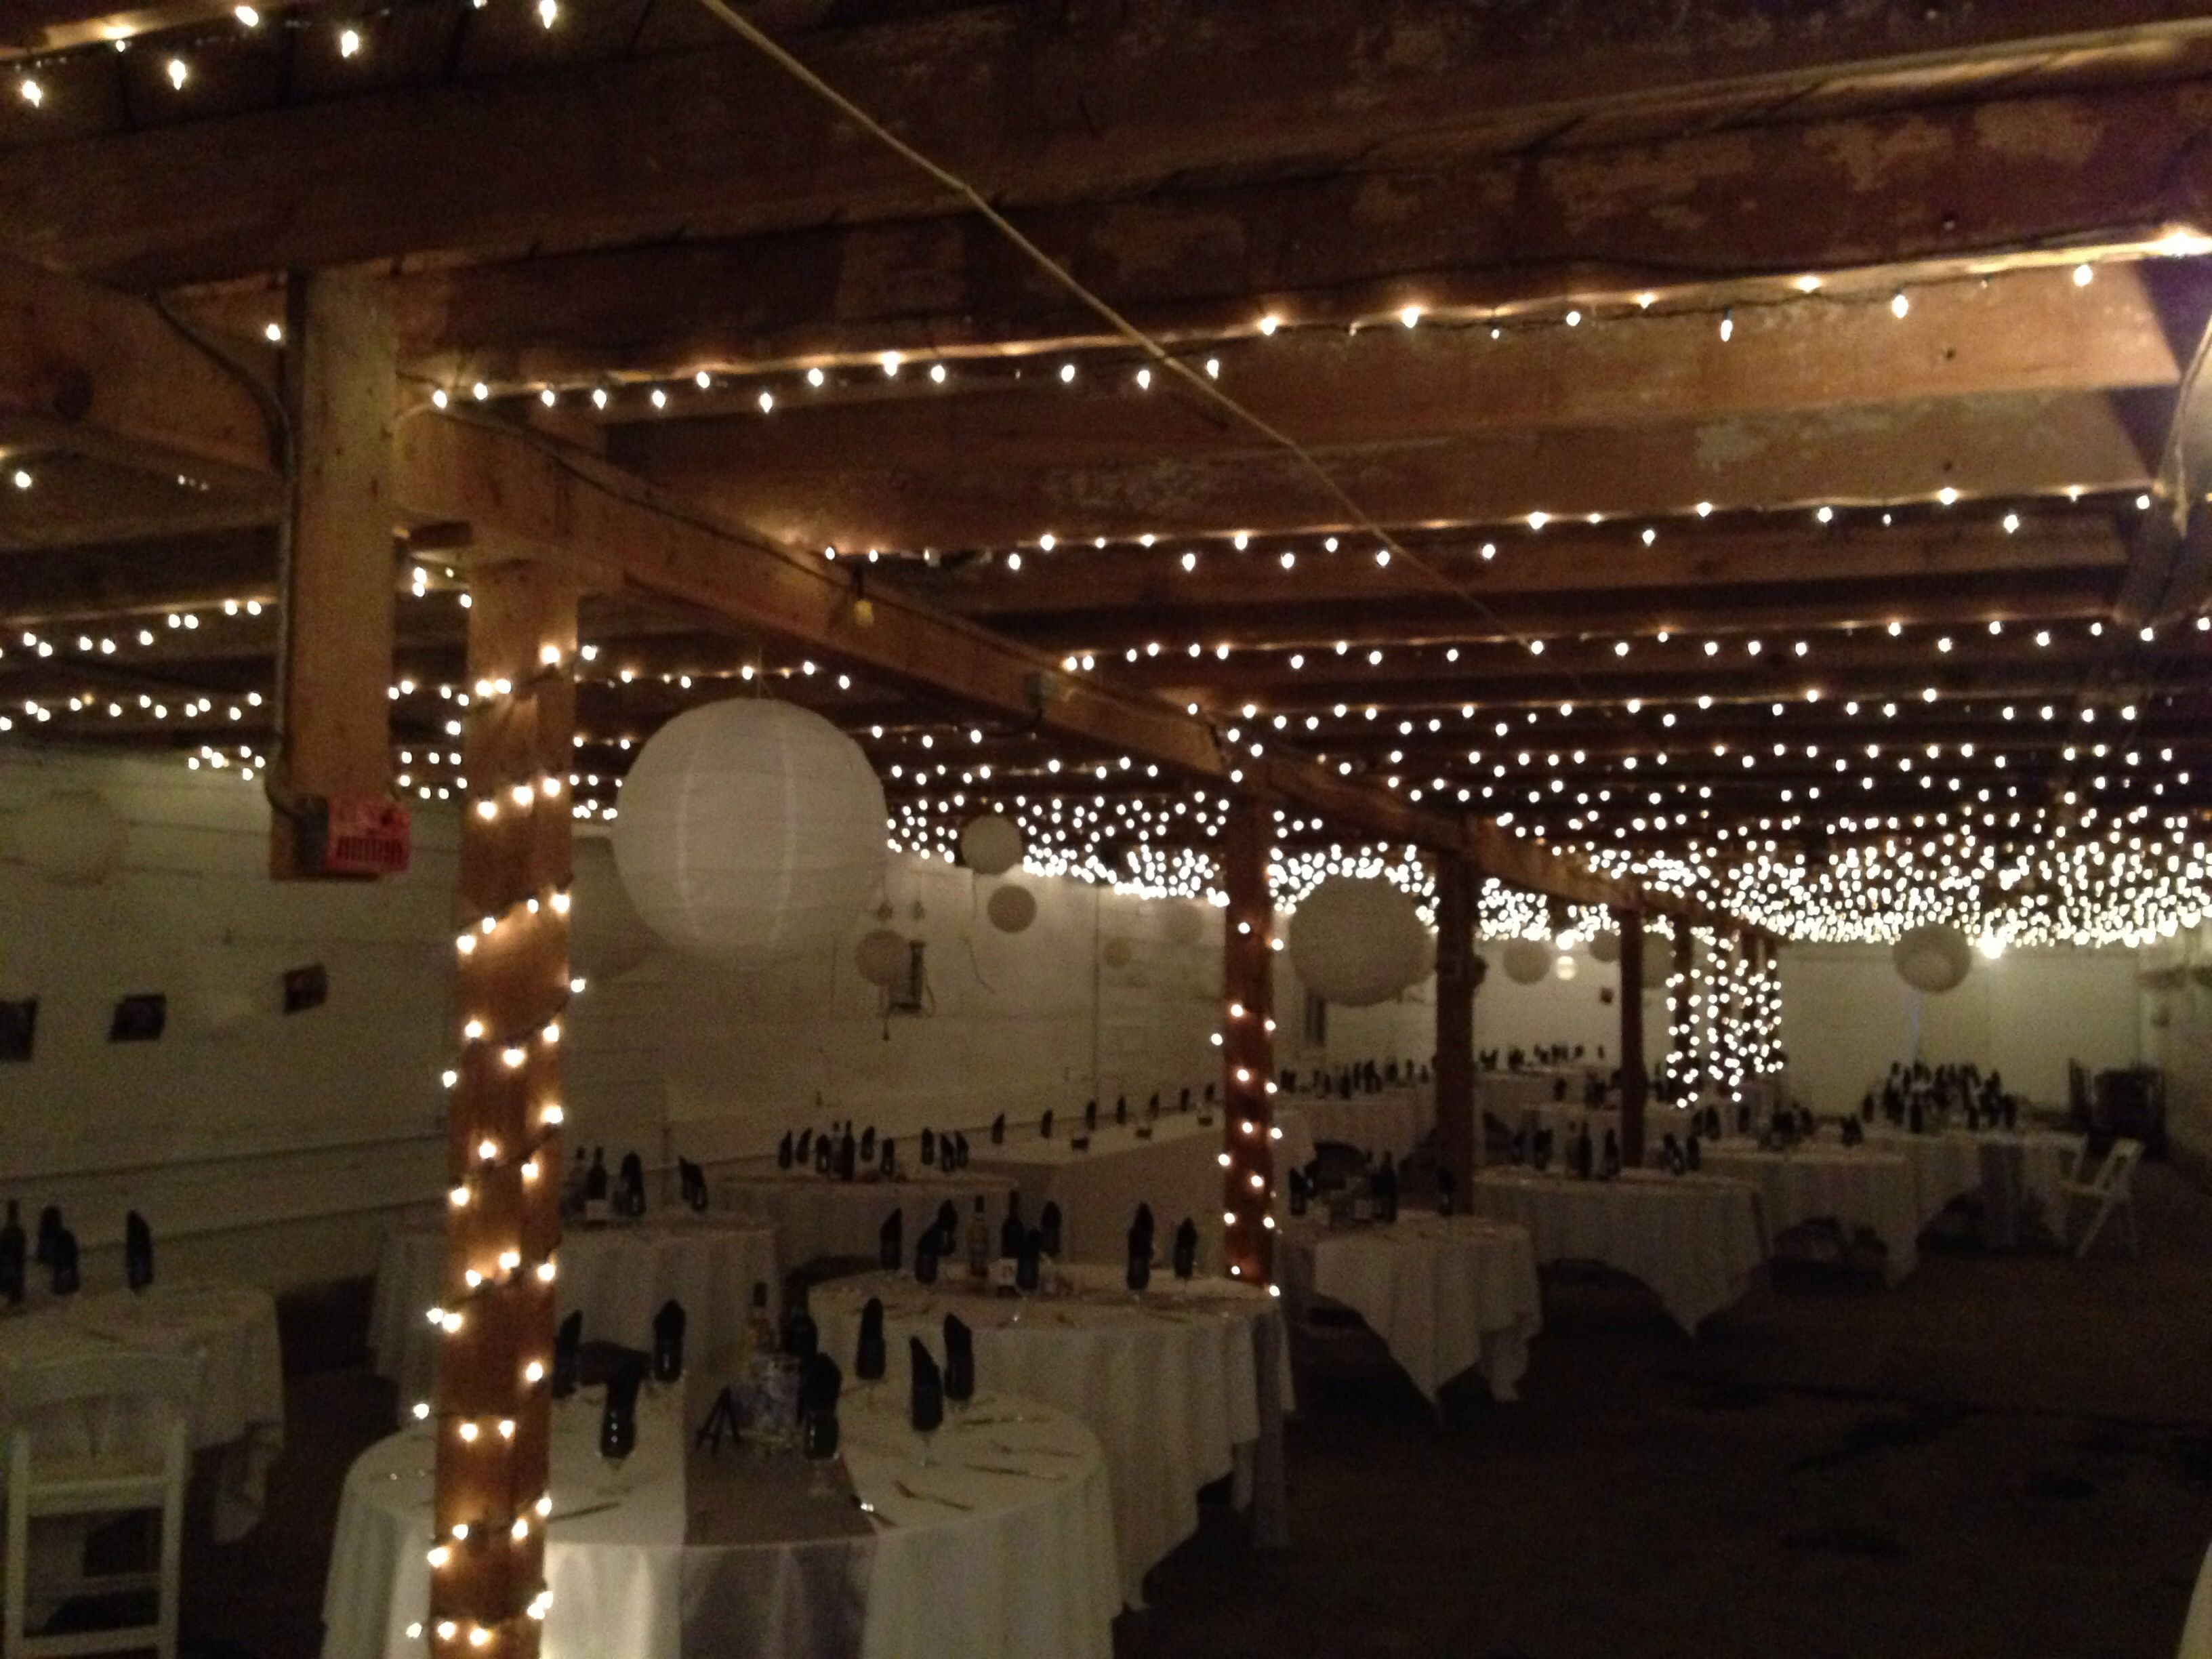 Wedding decor for a barn with a low ceiling wedding ideas wedding decor for a barn with a low ceiling junglespirit Choice Image